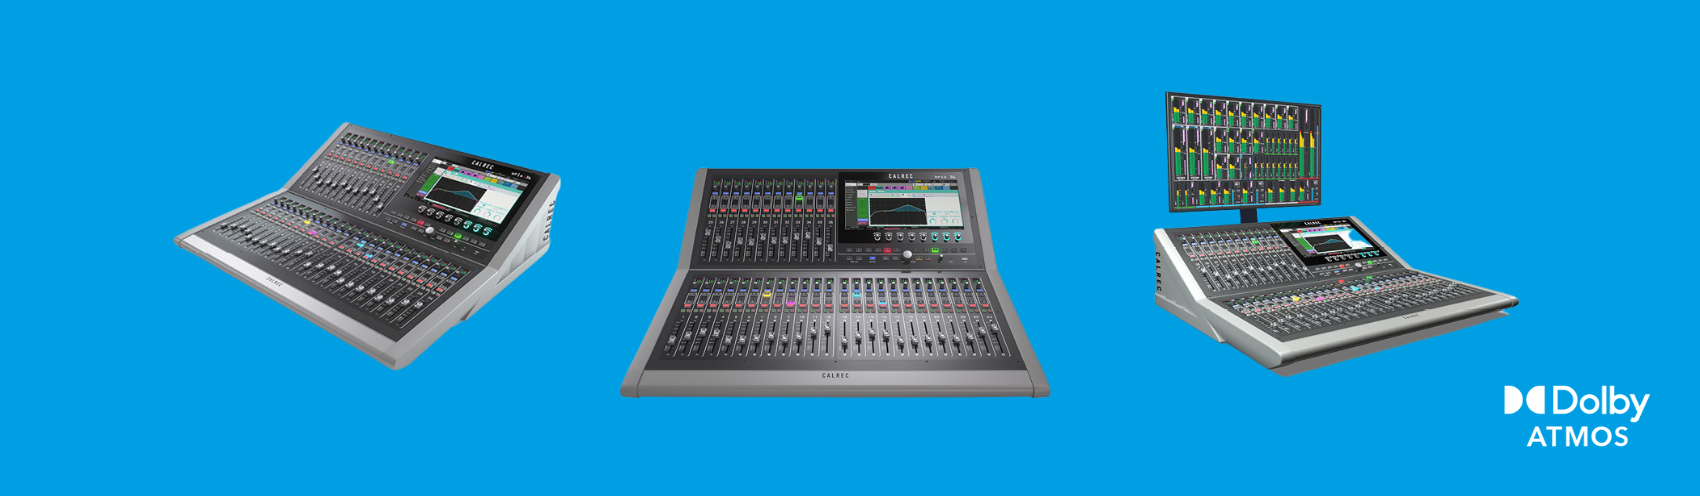 Dolby Atmos Training: Different viewpoints of the Calrec Brio digital broadcast audio console